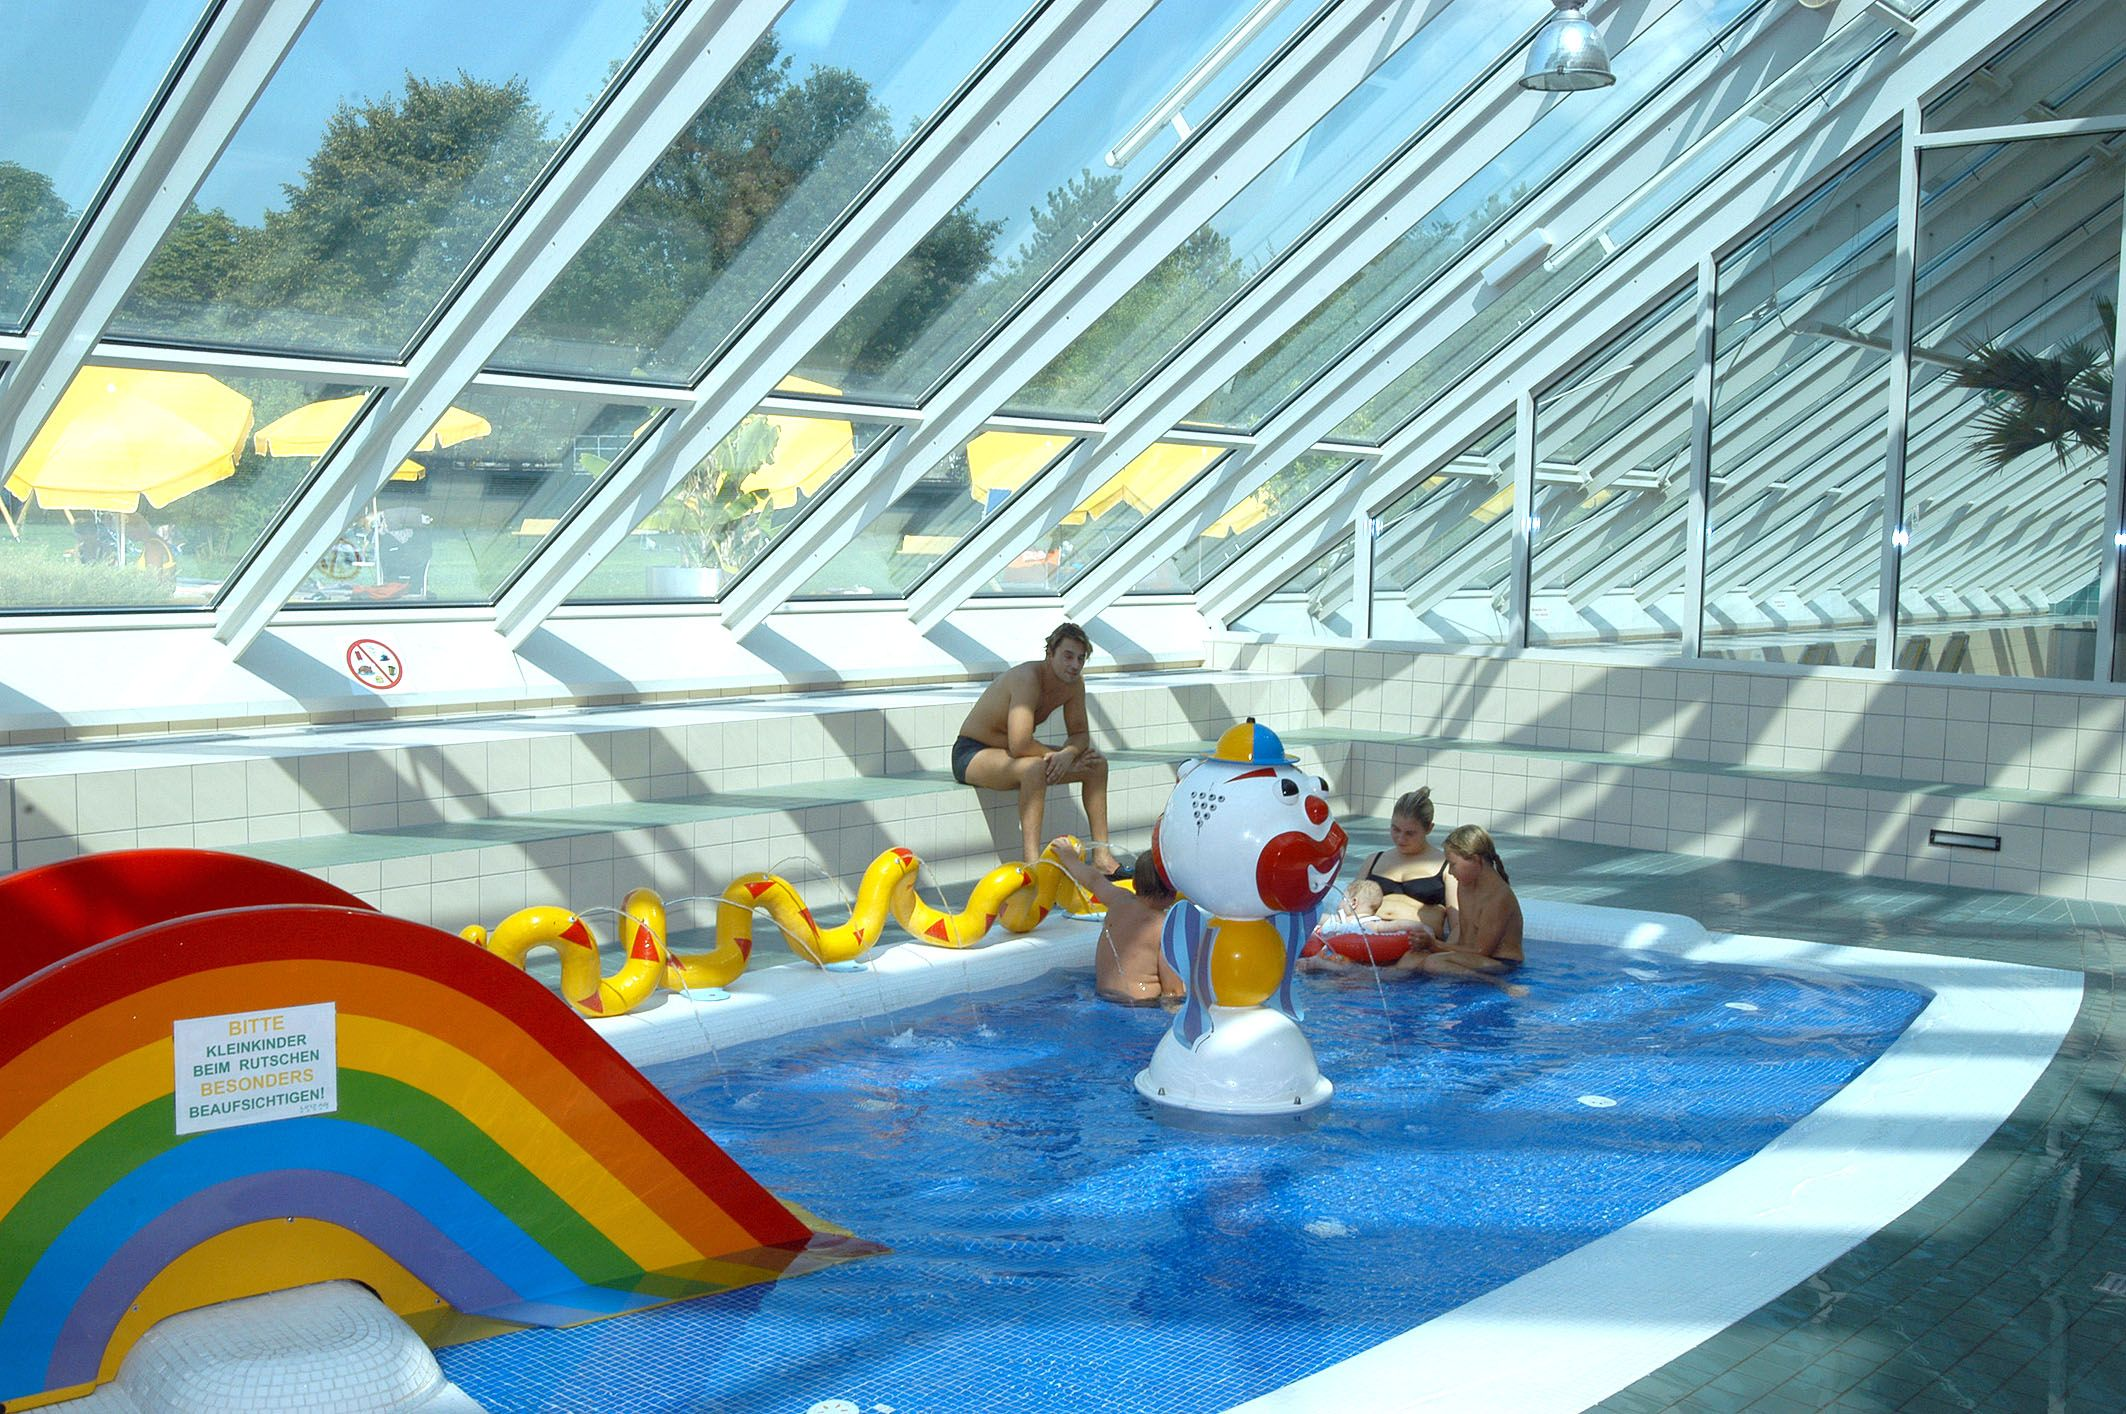 indoor acrylic swimming pool indoor pool designs for - Cool Indoor Swimming Pools